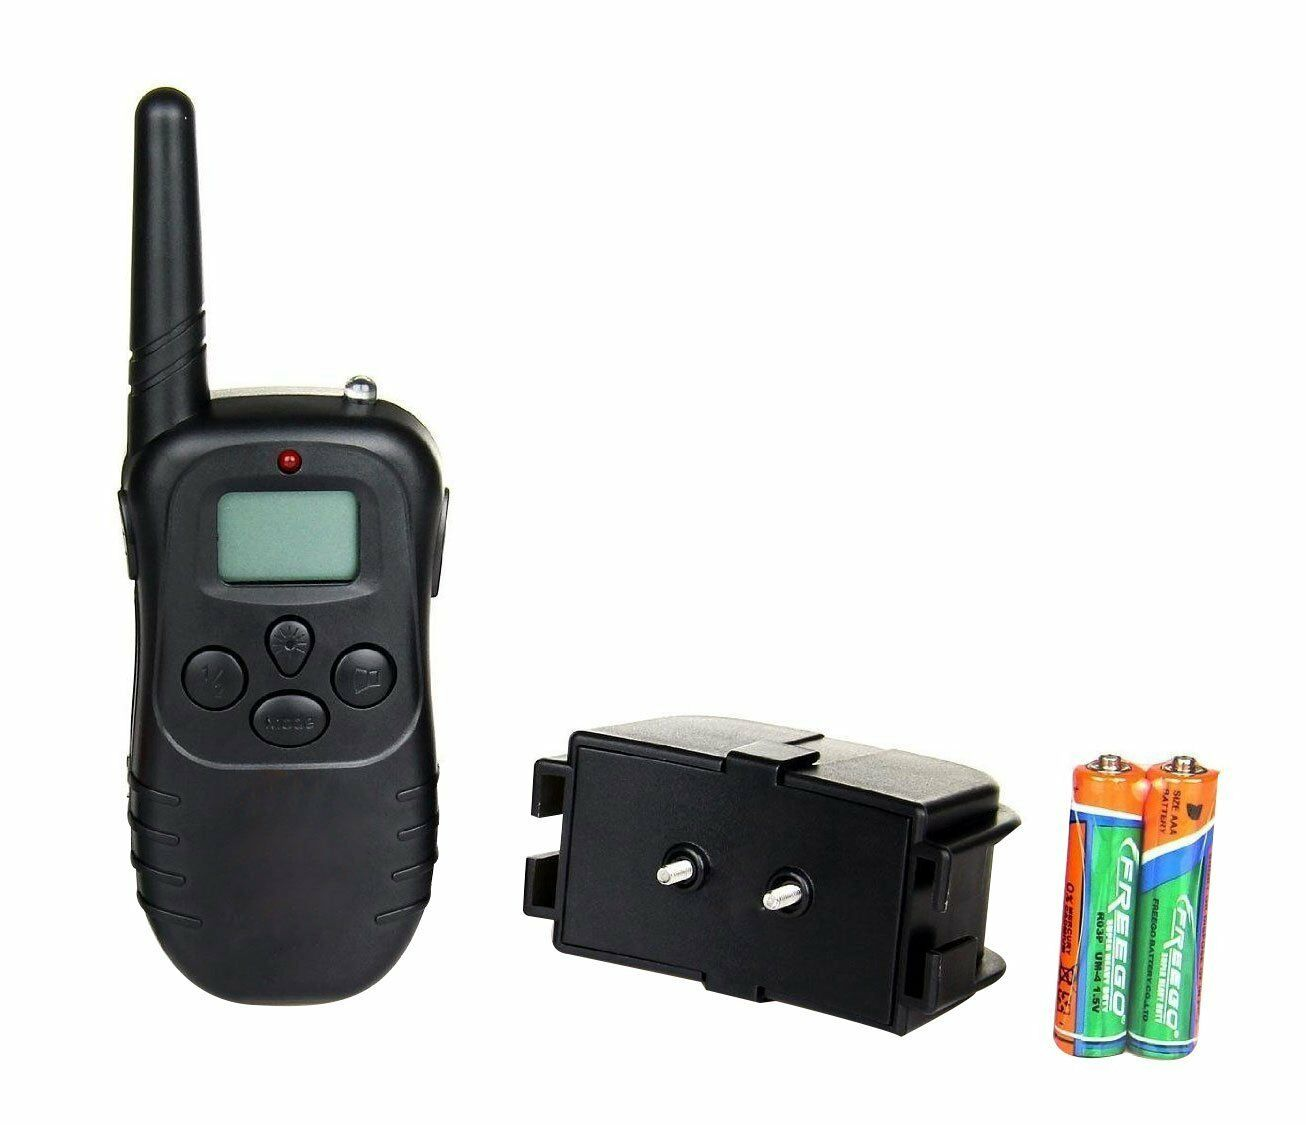 Image 21 - Remote-LCD-100LV-300M-Electric-Shock-Vibrate-Pet-Dog-Training-Collar-Waterproof